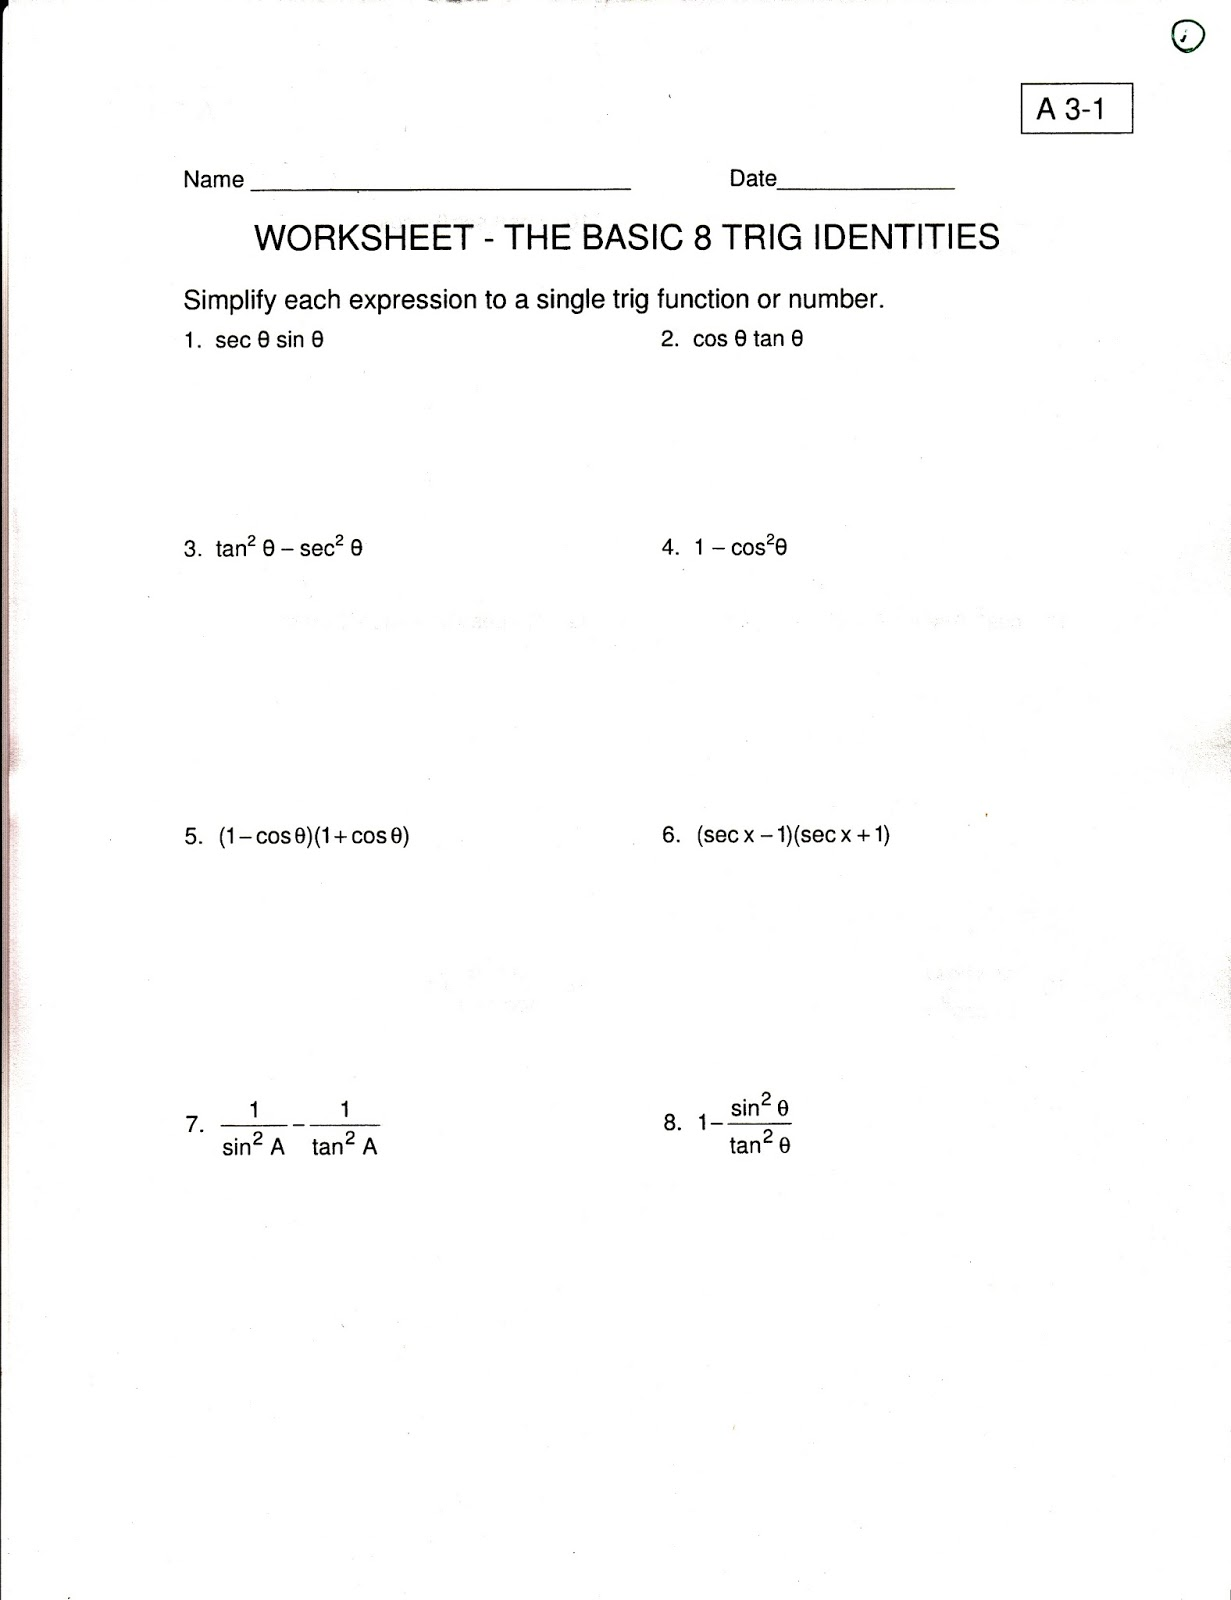 worksheet Verify Trig Identities Worksheet ehhs precalculus 2015 identities and real math are about trying different strategiesideas some may work others not if you try something it leads to a dead end